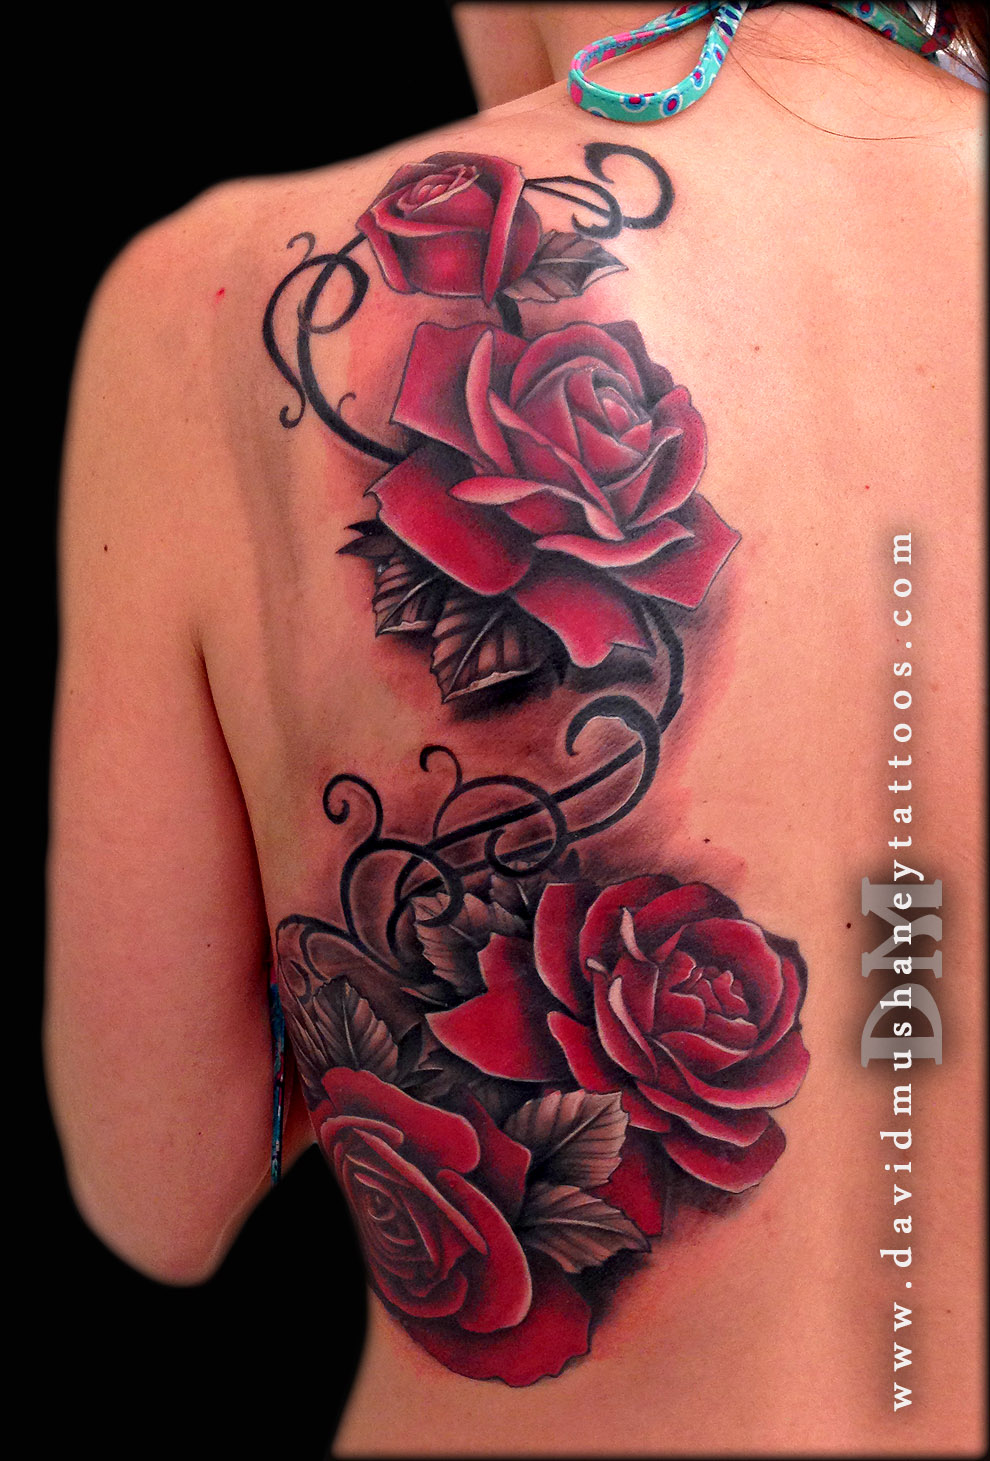 Red Roses Back Tattoo by David Mushaney